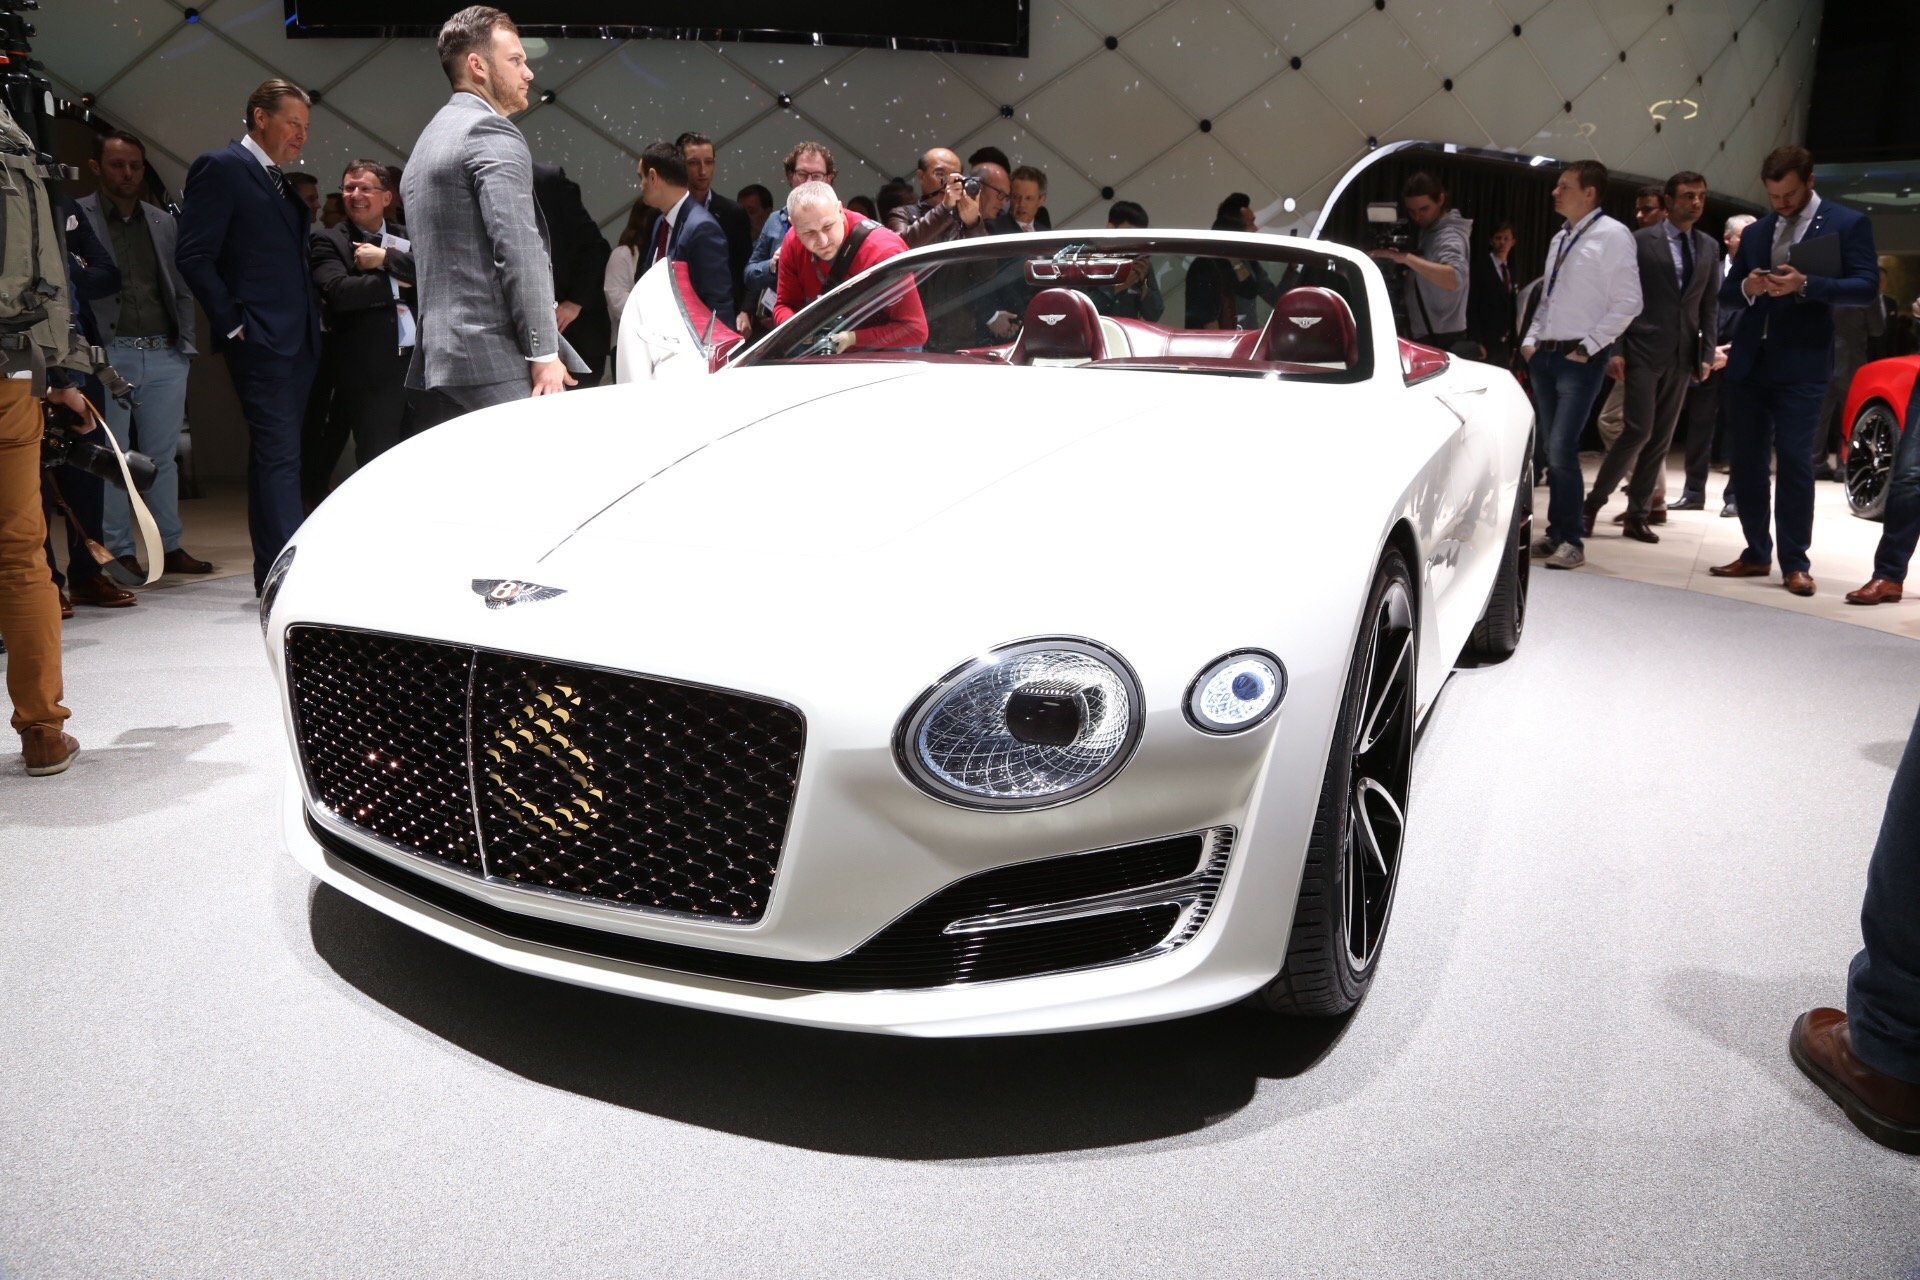 bentley-exp-12-speed-6e-concept-2017-geneva-auto-show_100594529_h